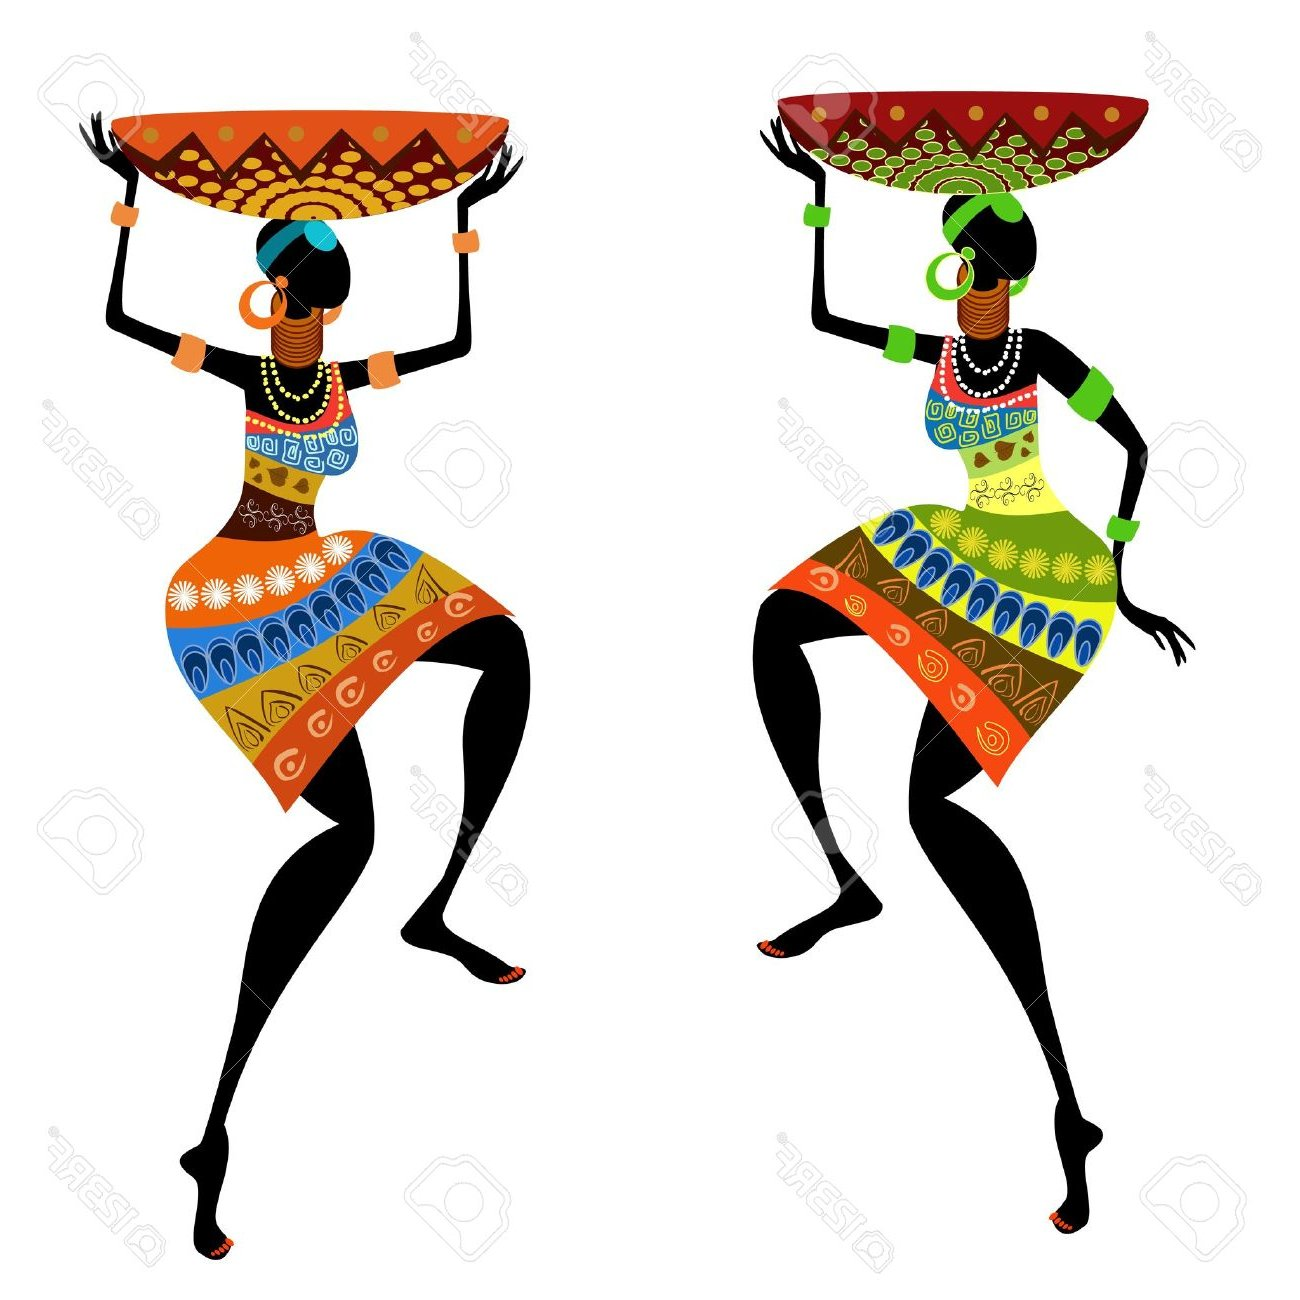 African clipart traditional. Tribal dance many interesting